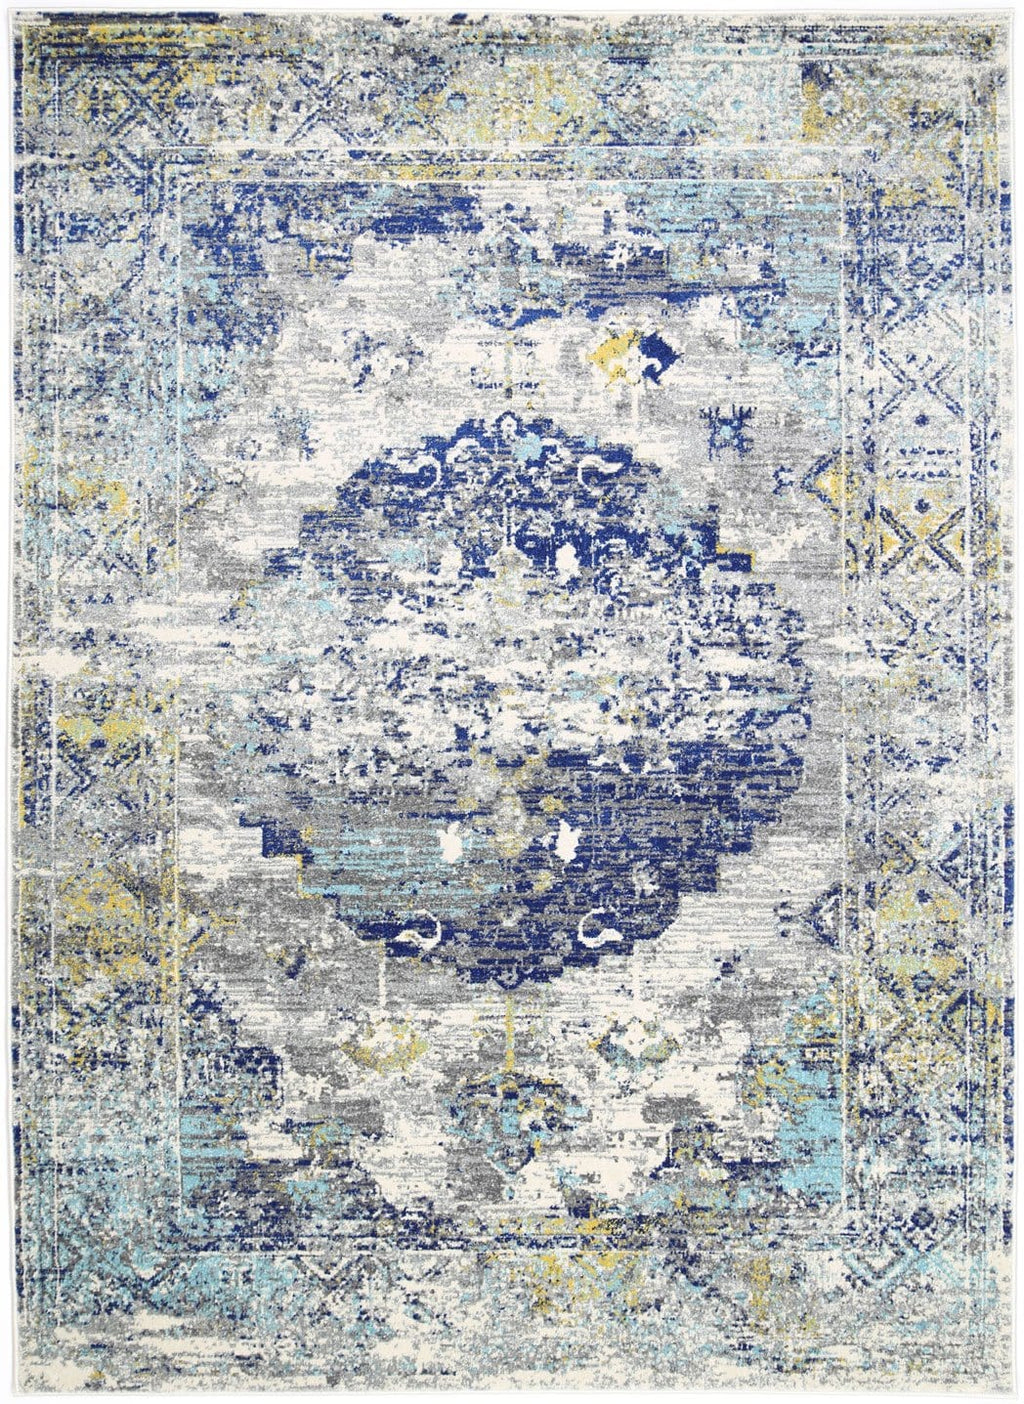 Ahras Grey and Blue Medallion Distressed Rug